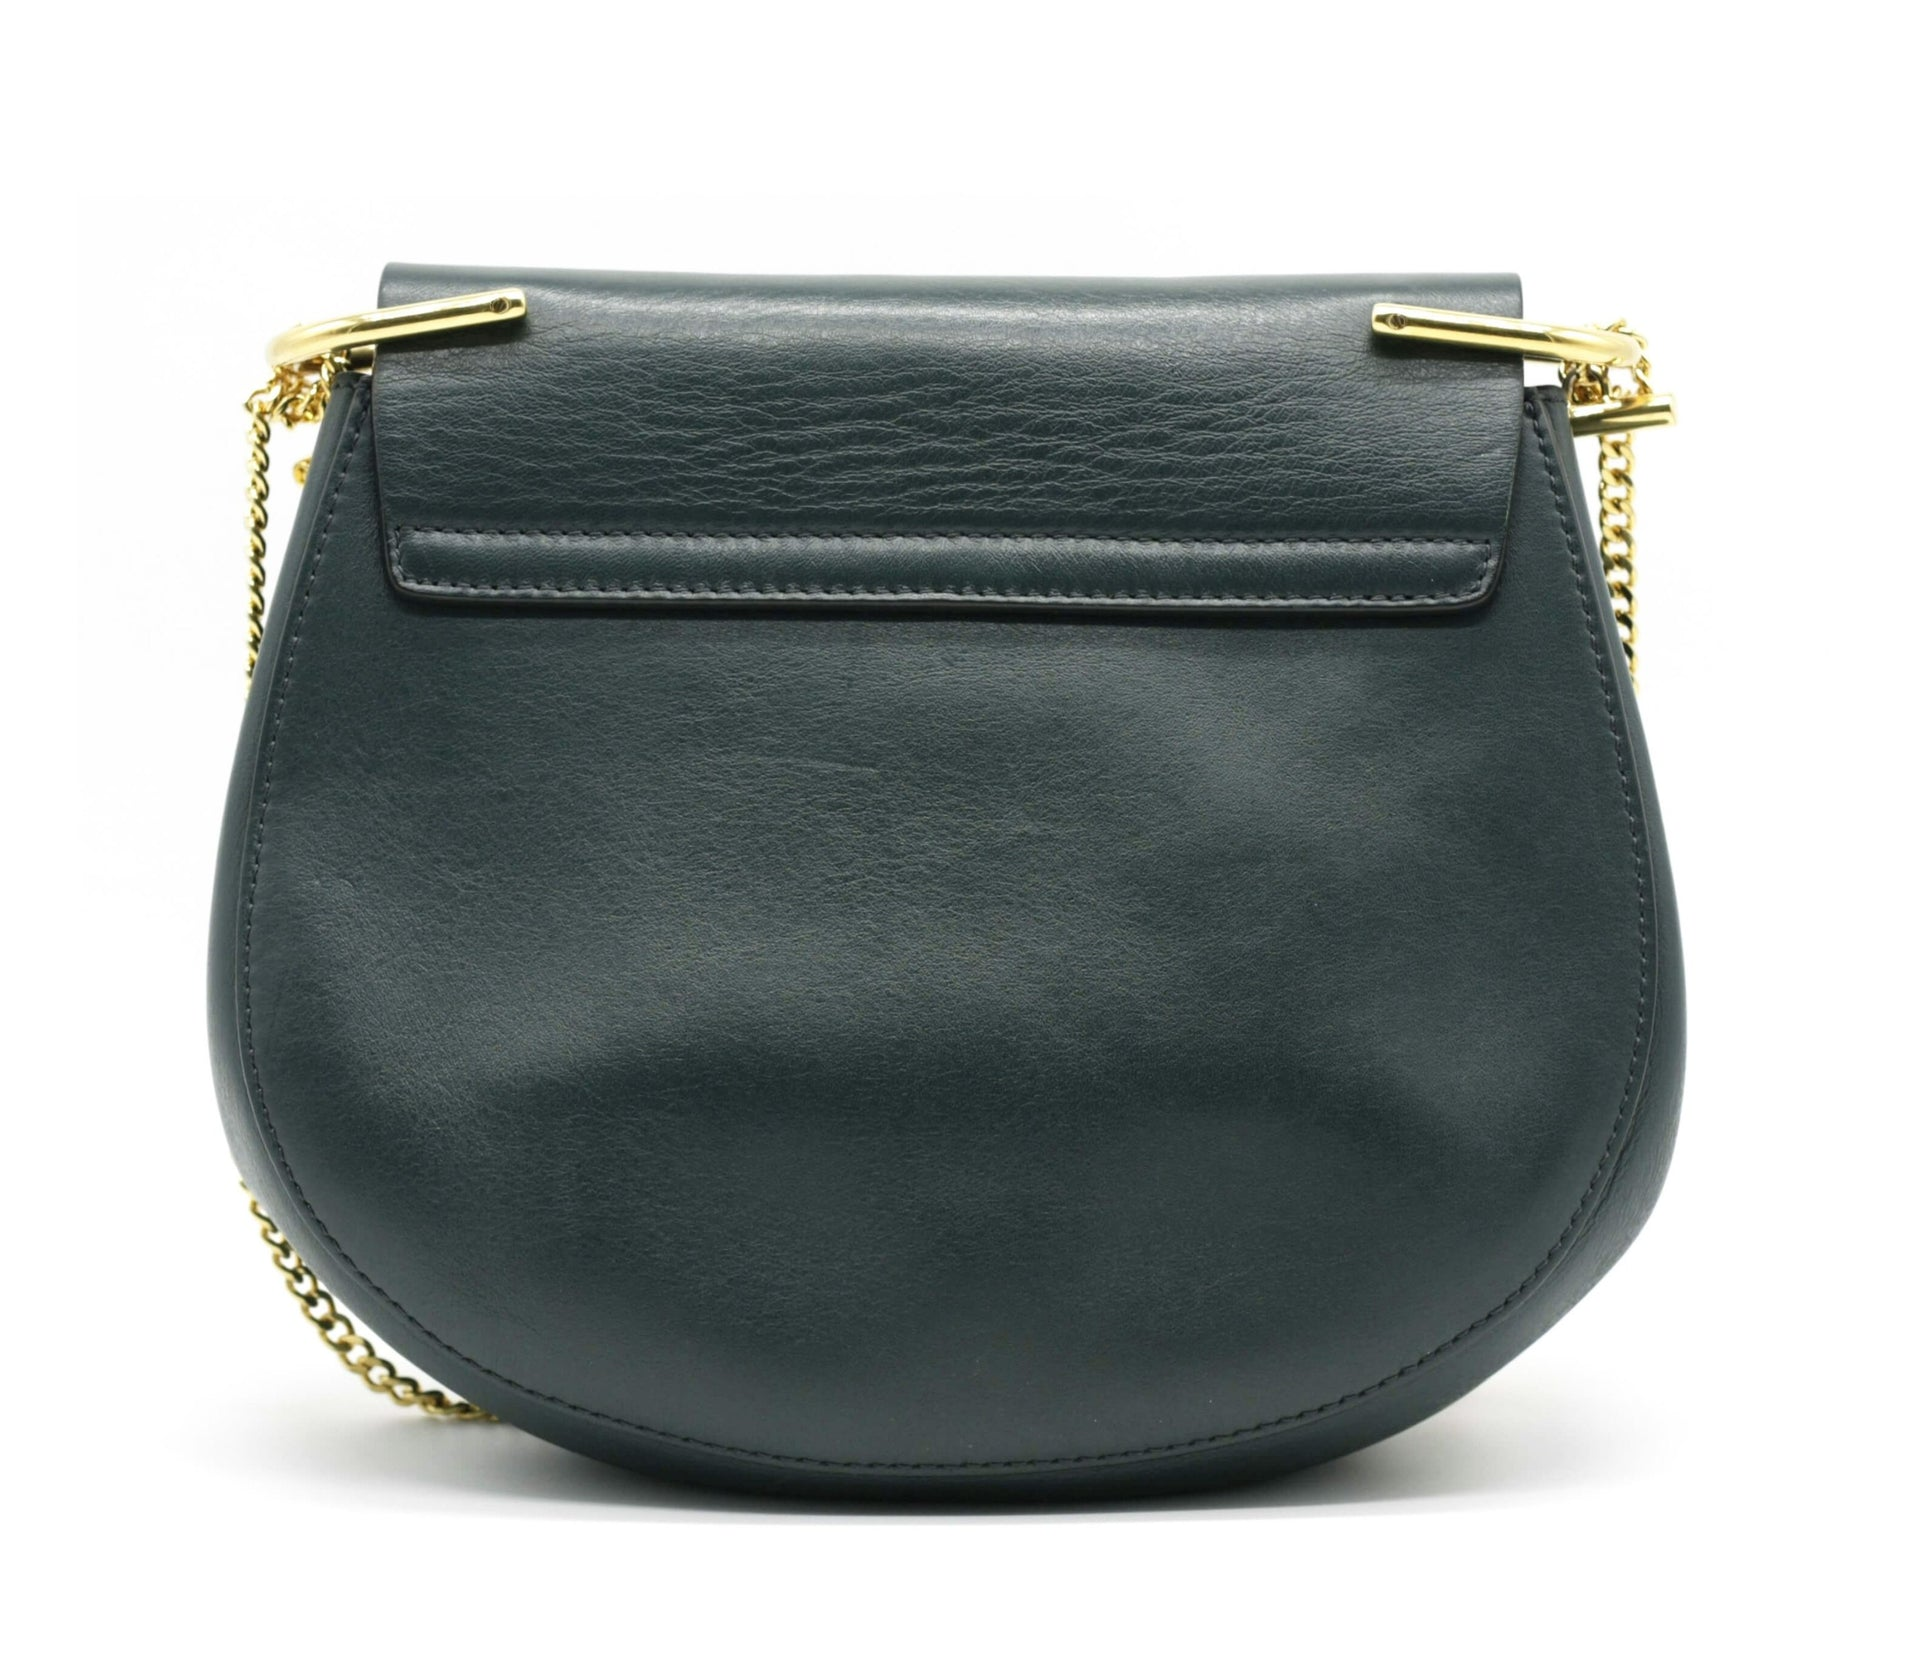 Chole Intense Green Drew saddle bag in pony and calfskin